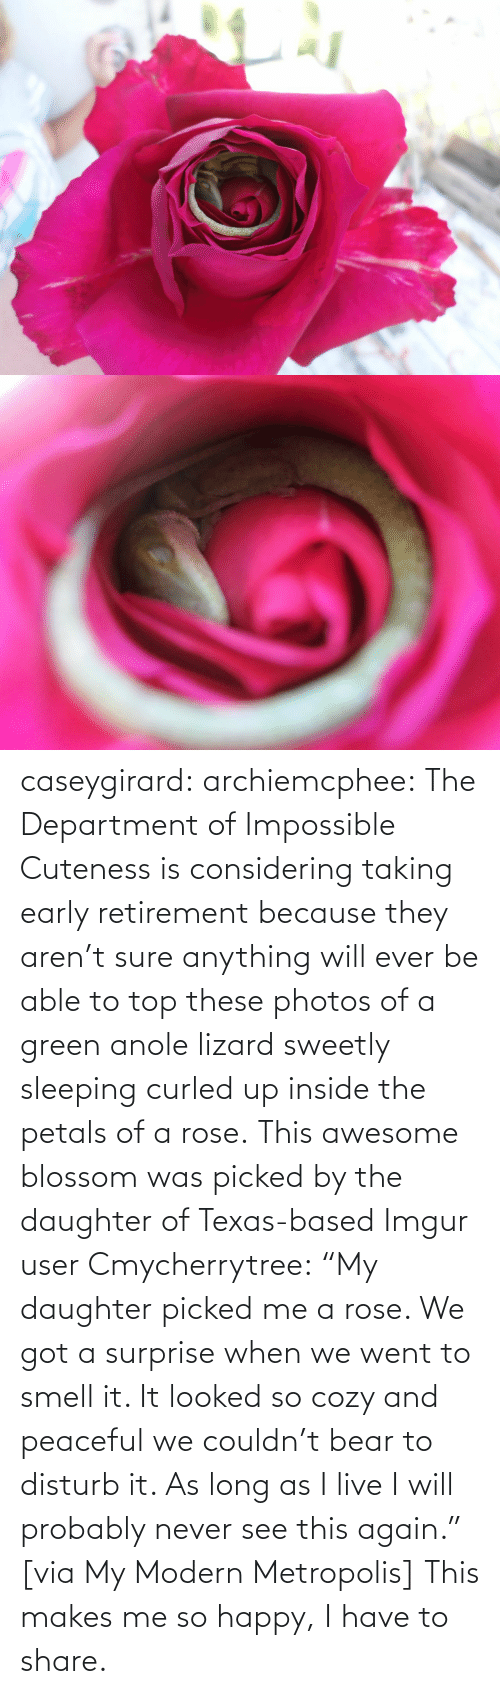 "bed: caseygirard:  archiemcphee:   The Department of Impossible Cuteness is considering taking early retirement because they aren't sure anything will ever be able to top these photos of a green anole lizard sweetly sleeping curled up inside the petals of a rose. This awesome blossom was picked by the daughter of Texas-based Imgur user Cmycherrytree: ""My daughter picked me a rose. We got a surprise when we went to smell it. It looked so cozy and peaceful we couldn't bear to disturb it. As long as I live I will probably never see this again."" [via My Modern Metropolis]   This makes me so happy, I have to share."